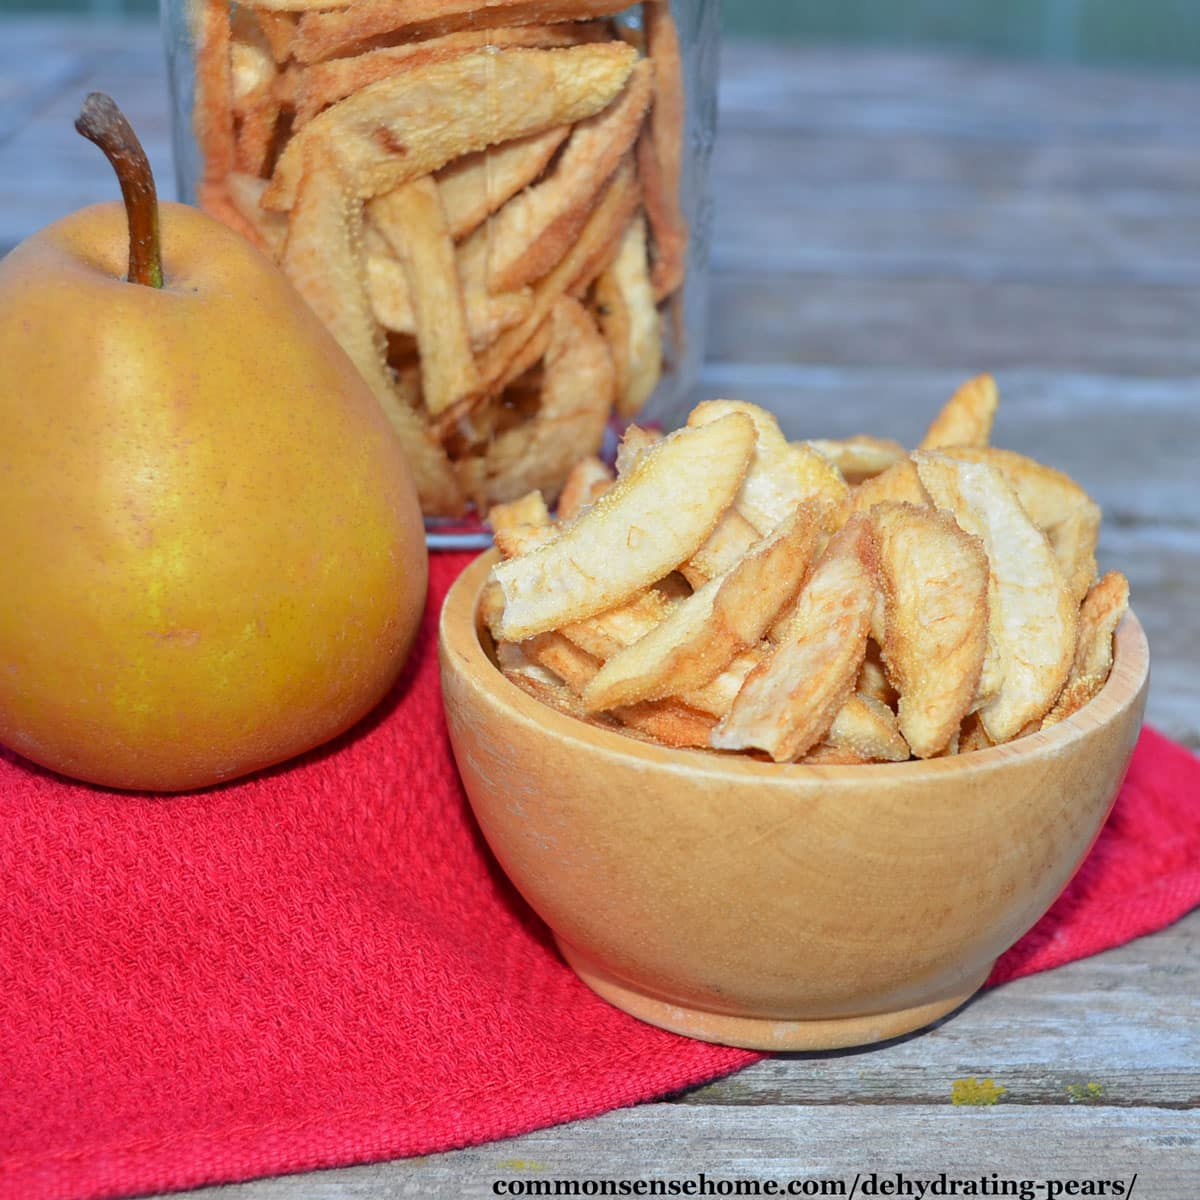 fresh pear and bowl of dehydrated pears